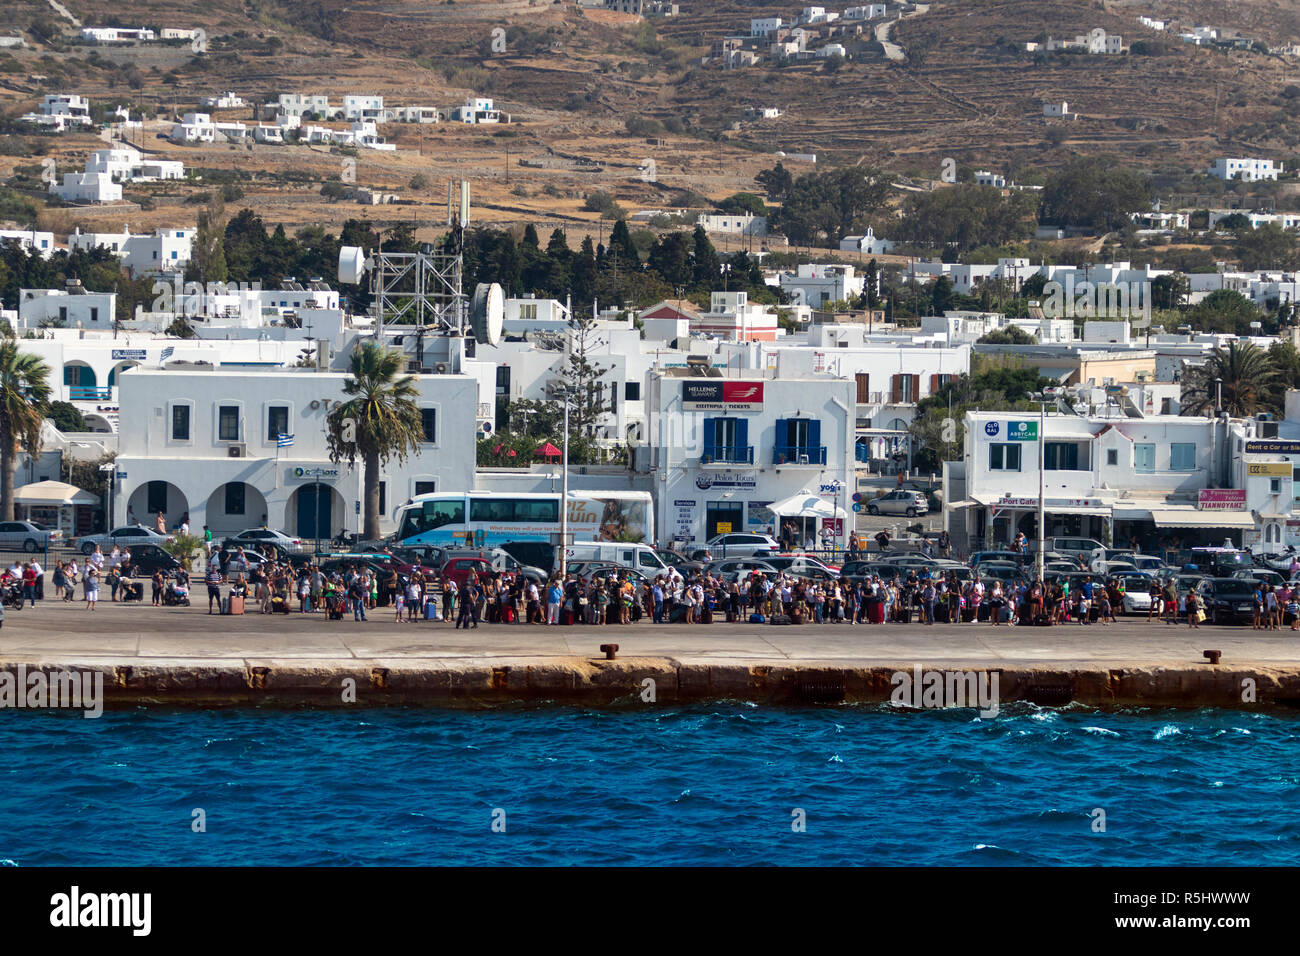 PAROS, GREECE - August 29, 2018: Crowd of tourists wait for embarkation at the ferry port of Paros island on a bright summer day. - Stock Image